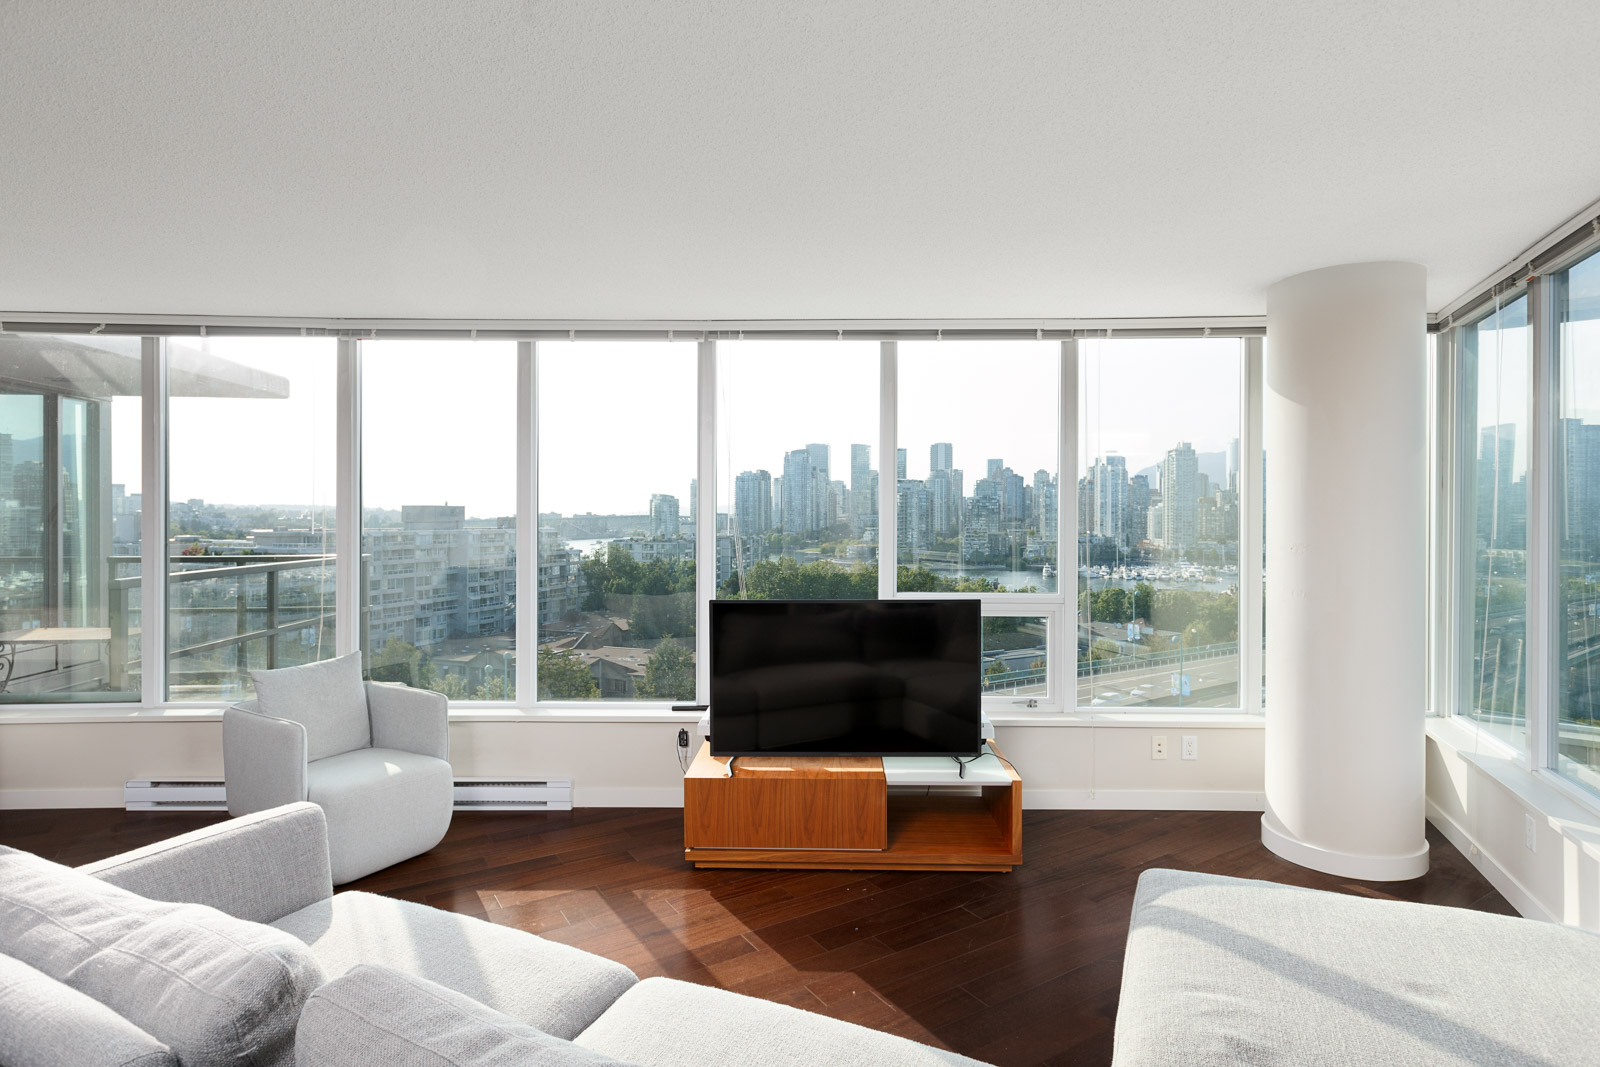 White couches surrounding a television overlooking the Vancouver city skyline.